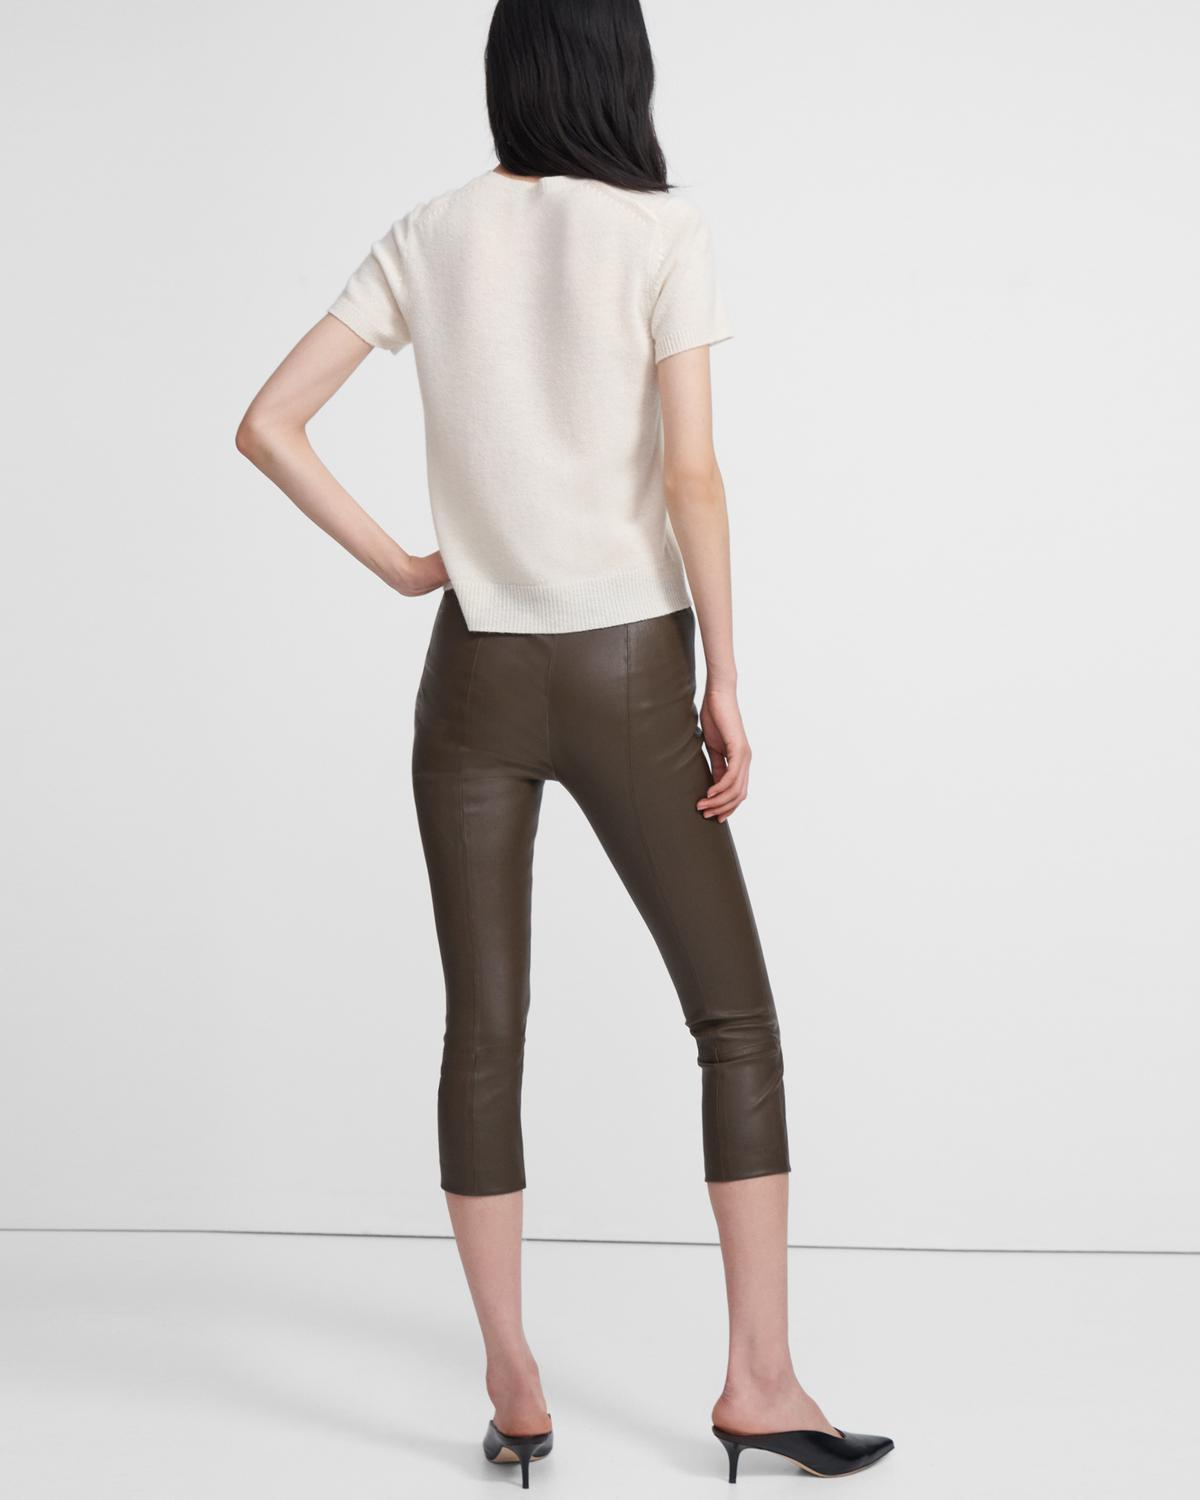 Skinny Capri Legging in Leather